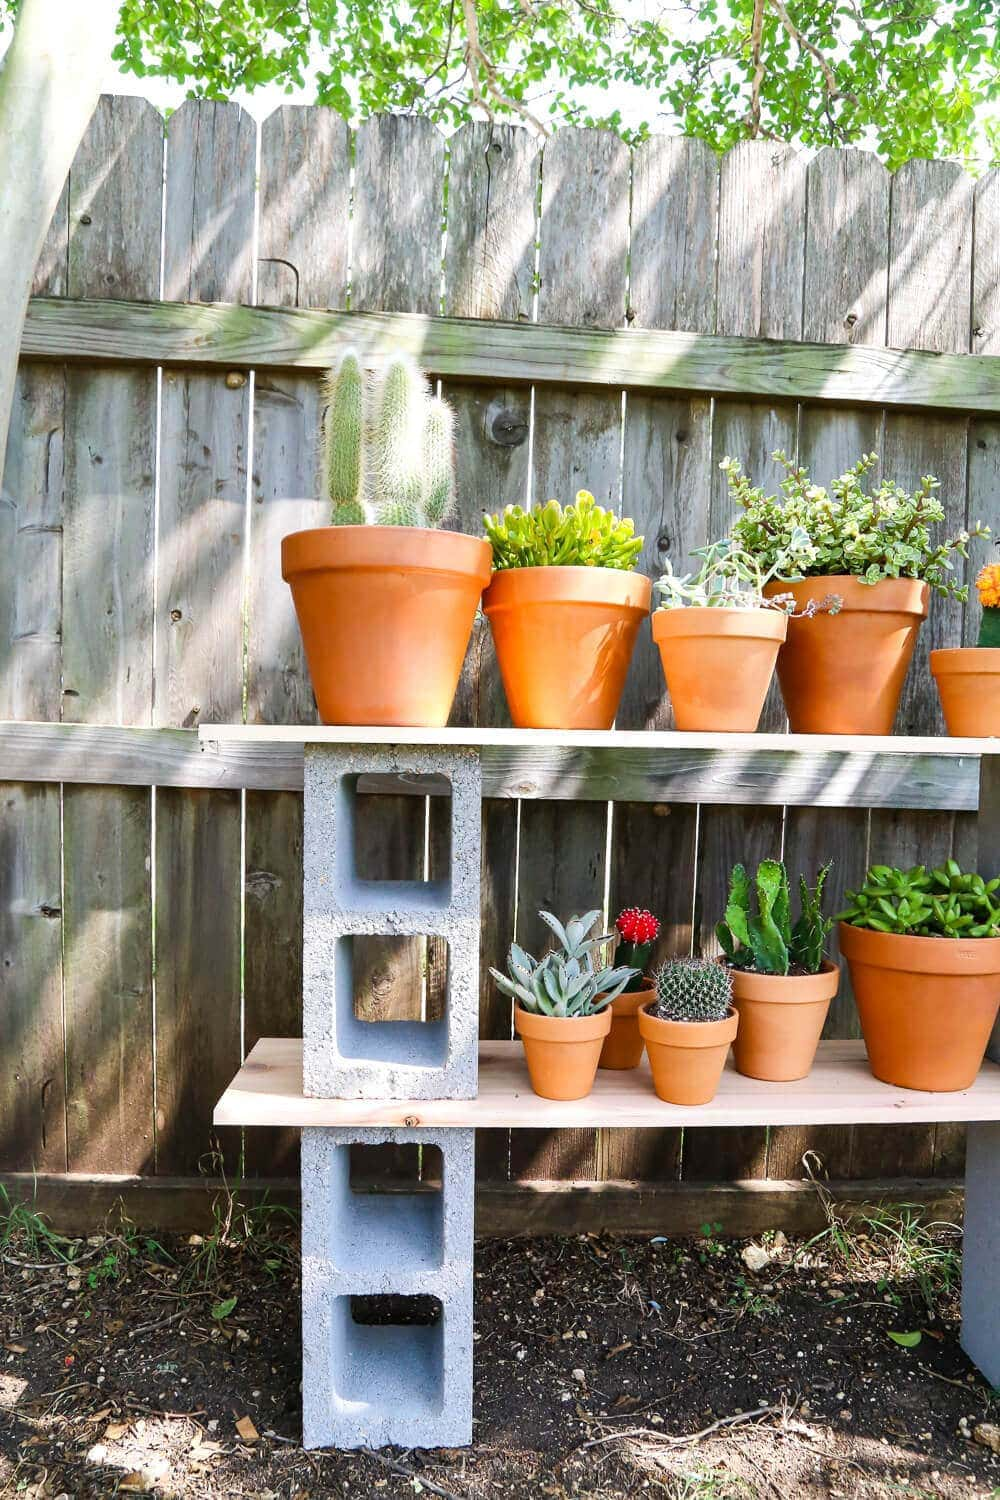 Cinder block shelves with plants